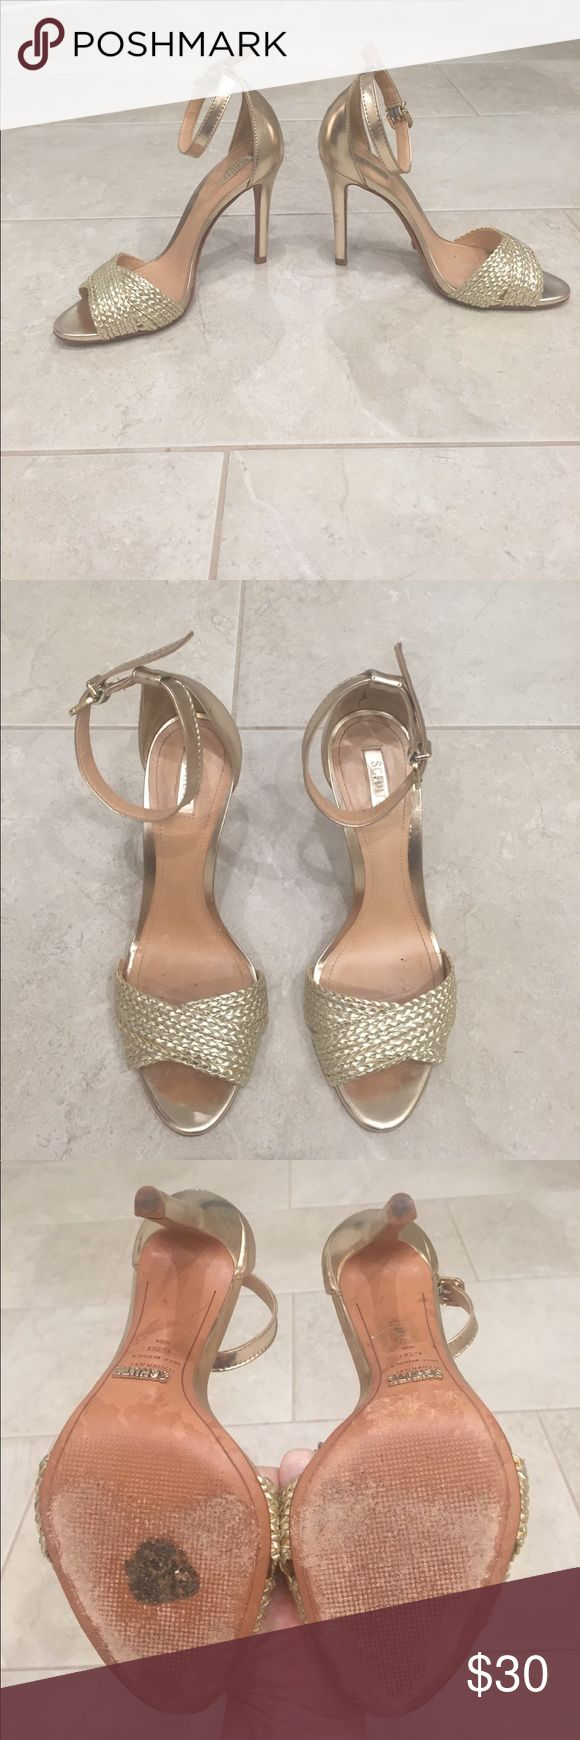 Schutz heeled sandals, size 6.5 Schutz heeled sandals, size 6.5, color-gold. Worn only twice! Soles and heel pad in great condition! Great neutral heel for the Spring/Summer! SCHUTZ Shoes Heels